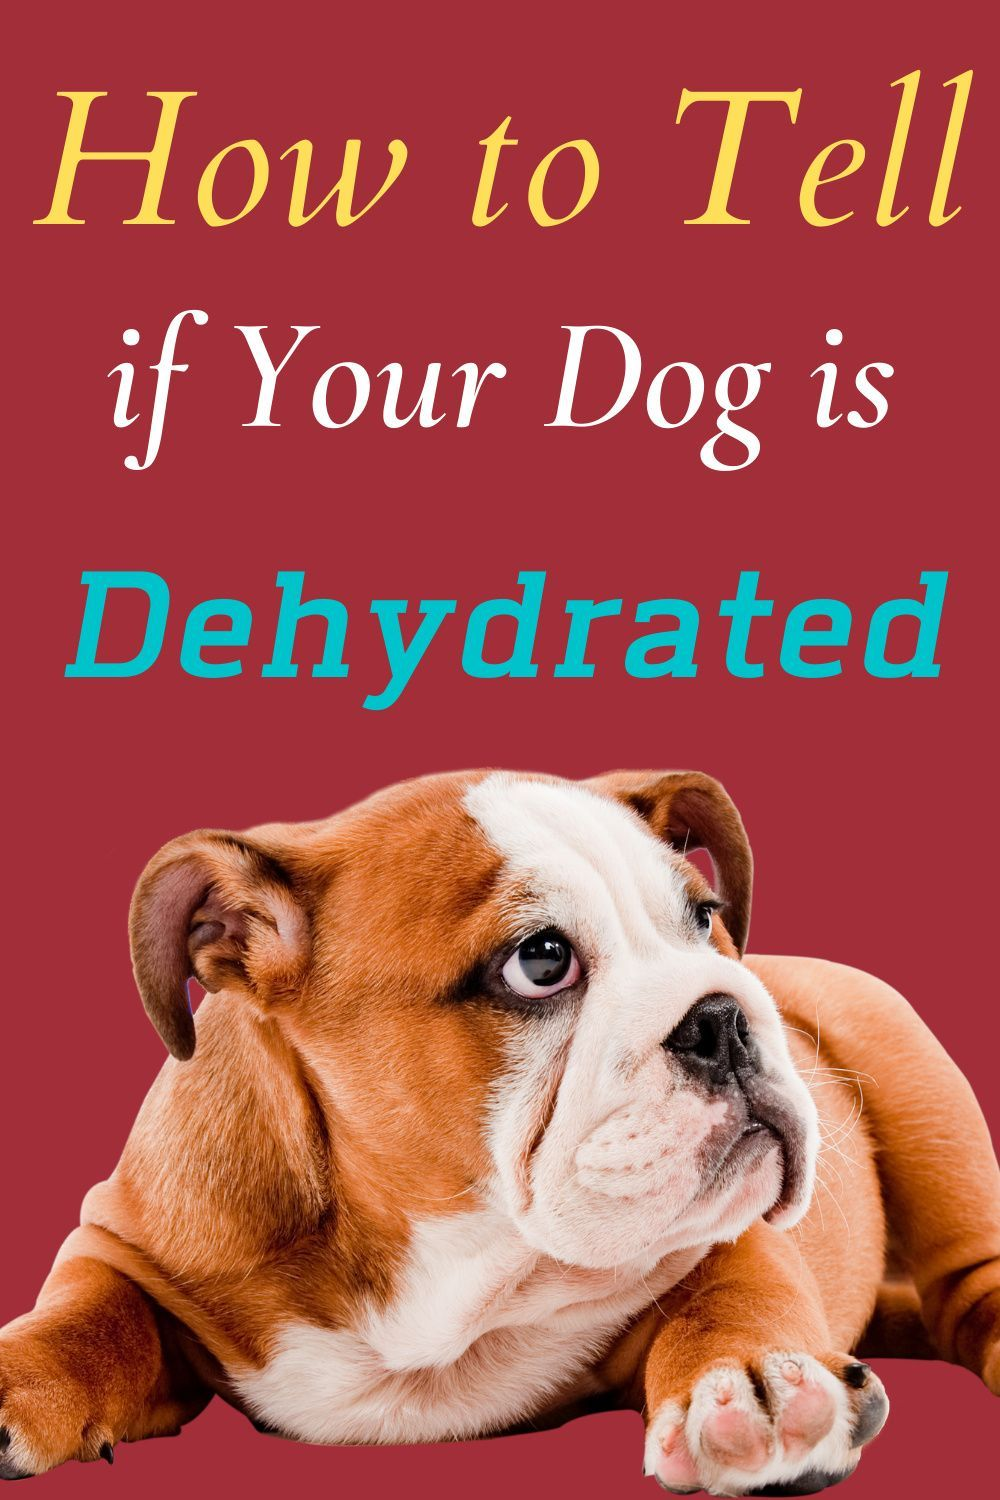 How To Tell If Your Dog Is Dehydrated Pets Daily Life Your Dog Dog Health Dog Care Tips